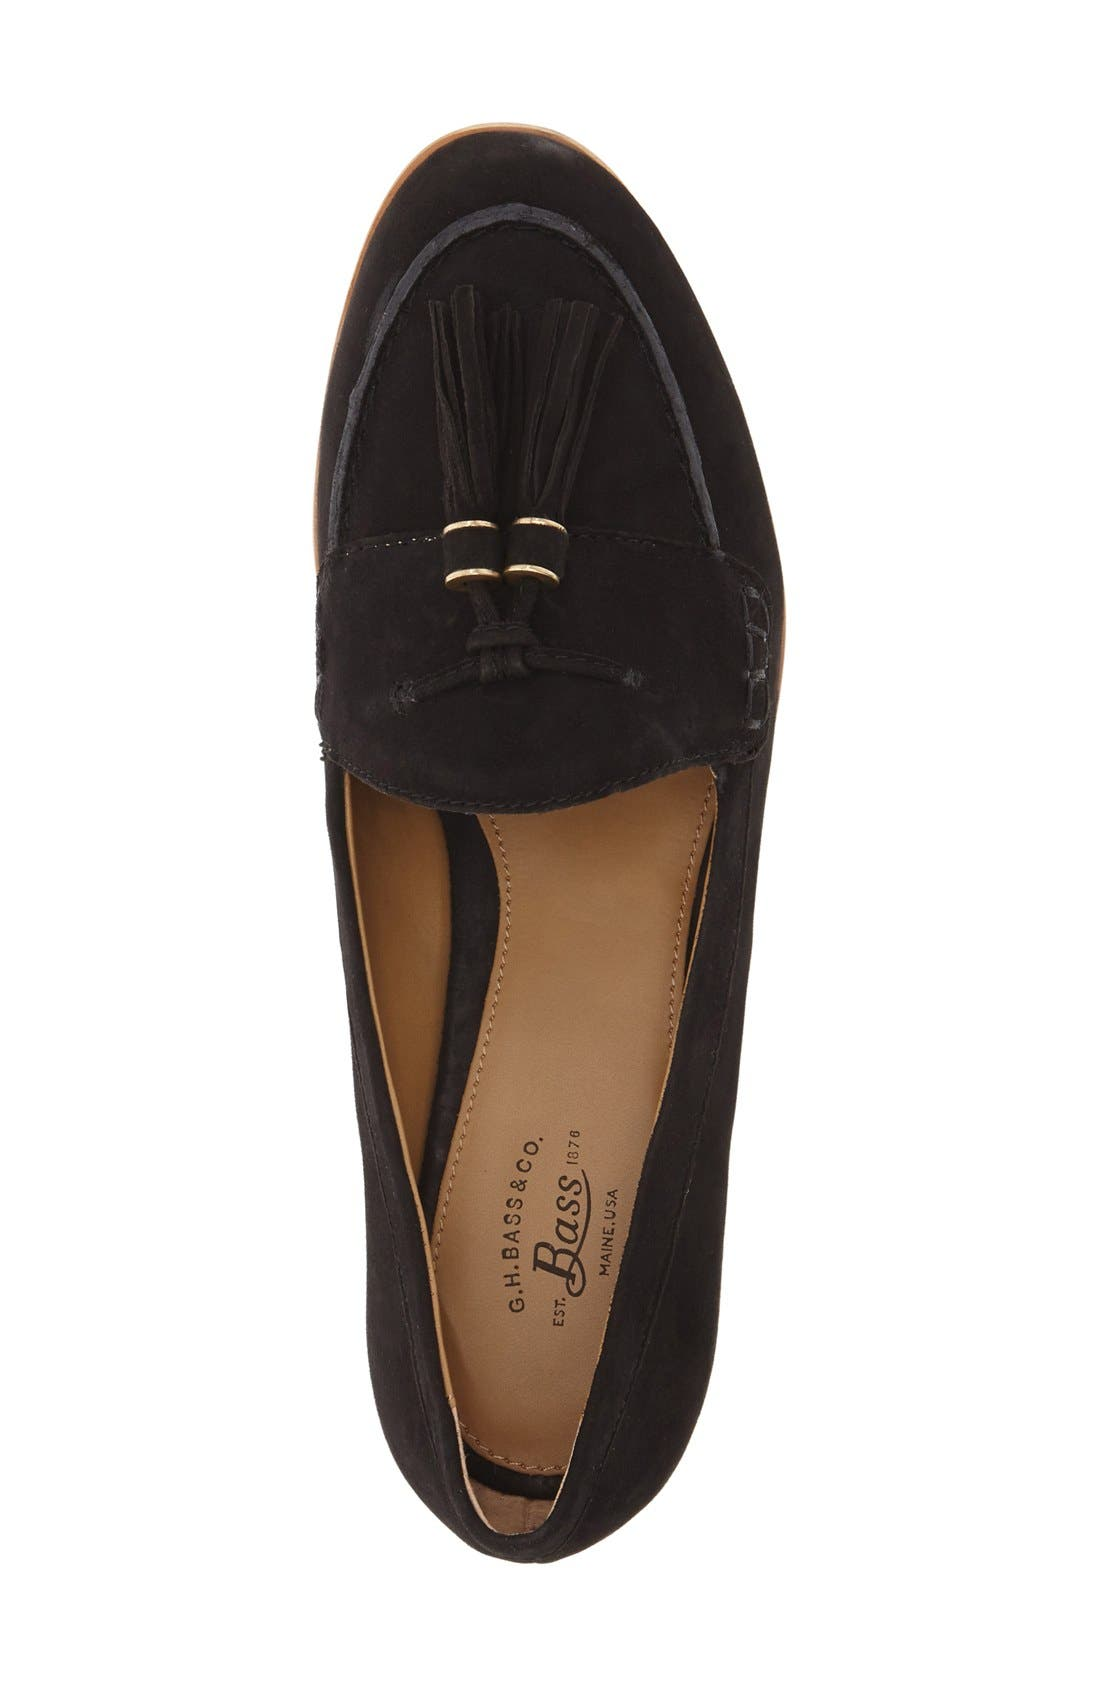 'Estelle' Tassel Loafer,                             Alternate thumbnail 2, color,                             001